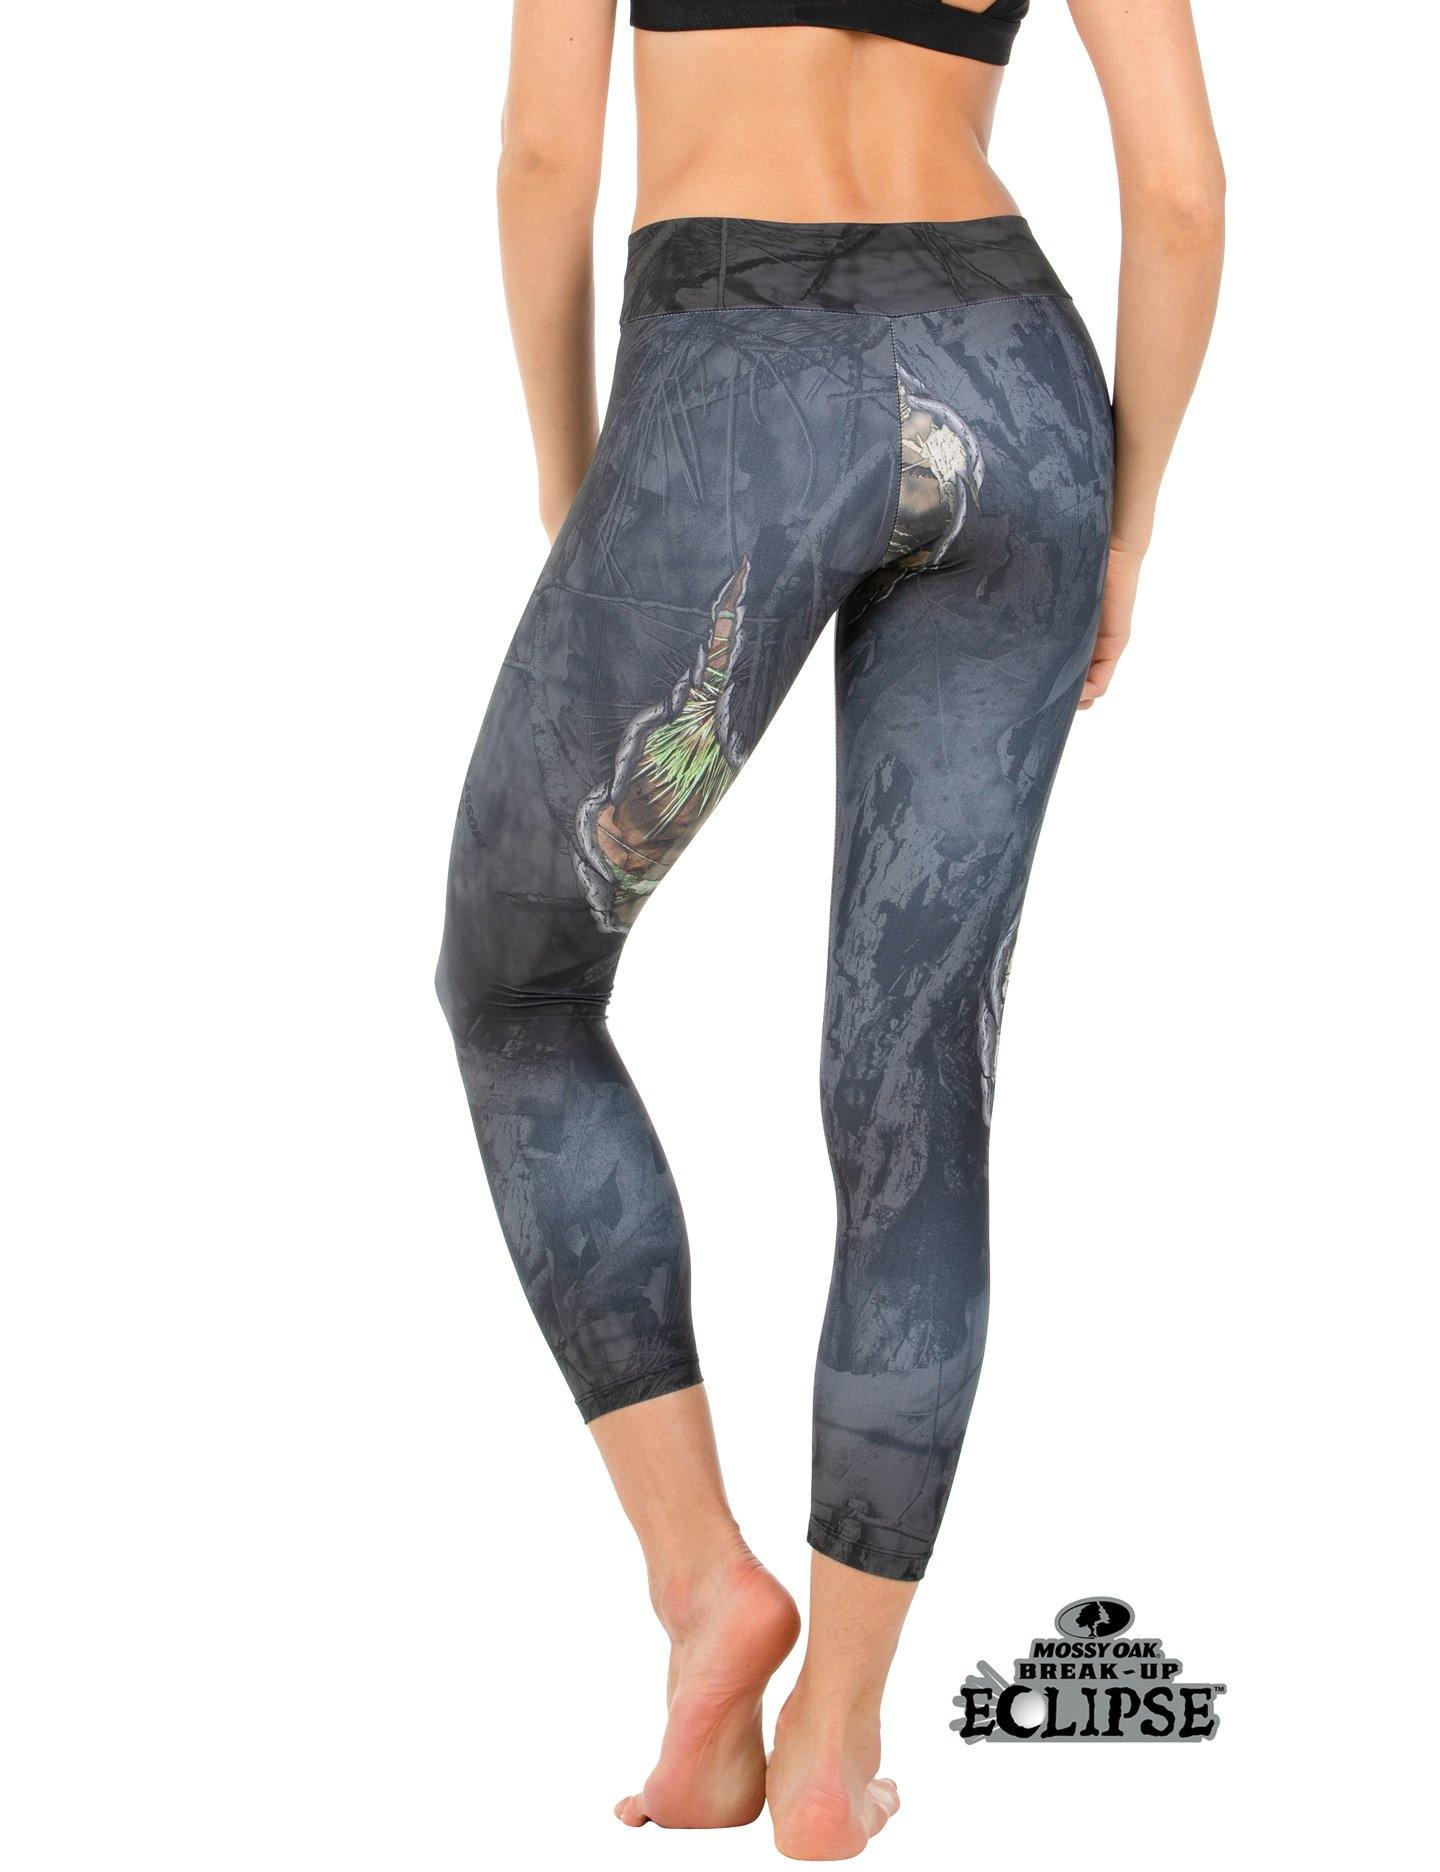 Apsara Leggings Low Waist Cropped, Mossy Oak Break-Up Eclipse